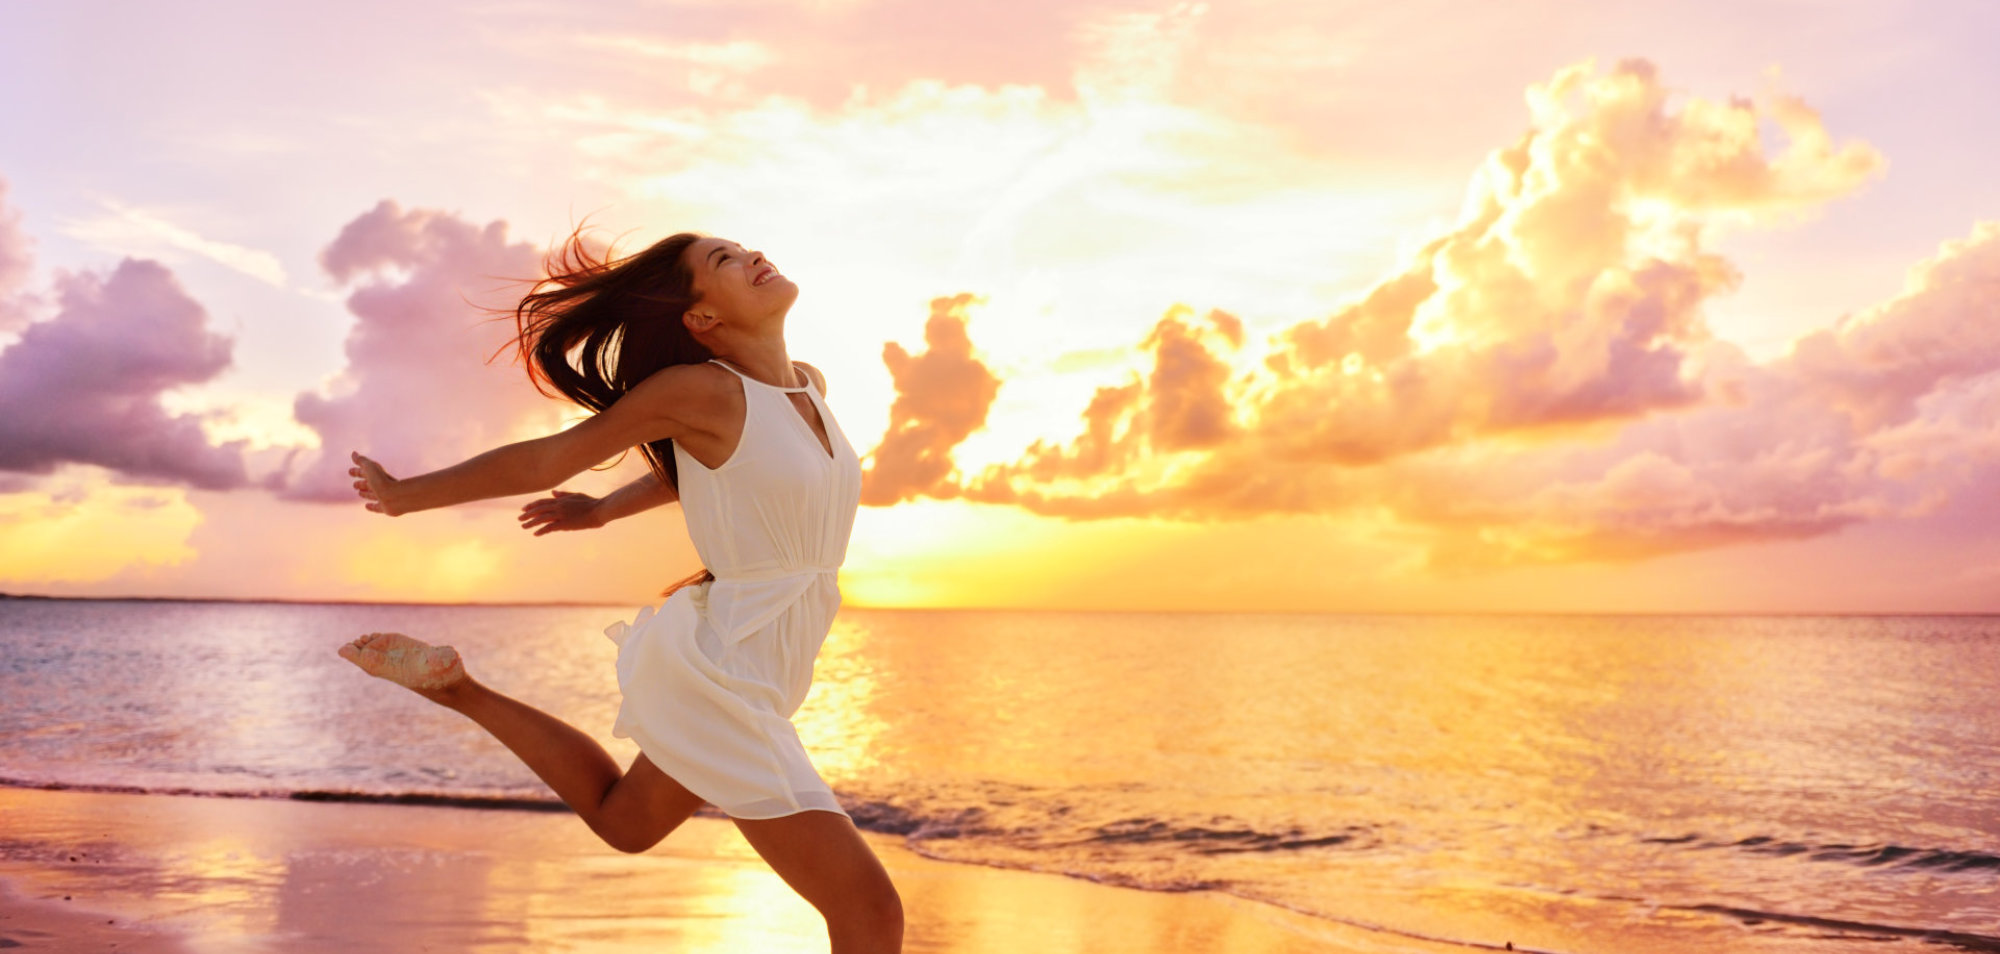 Happy carefree Asian woman feeling blissful jumping of joy on peaceful beach at sunset